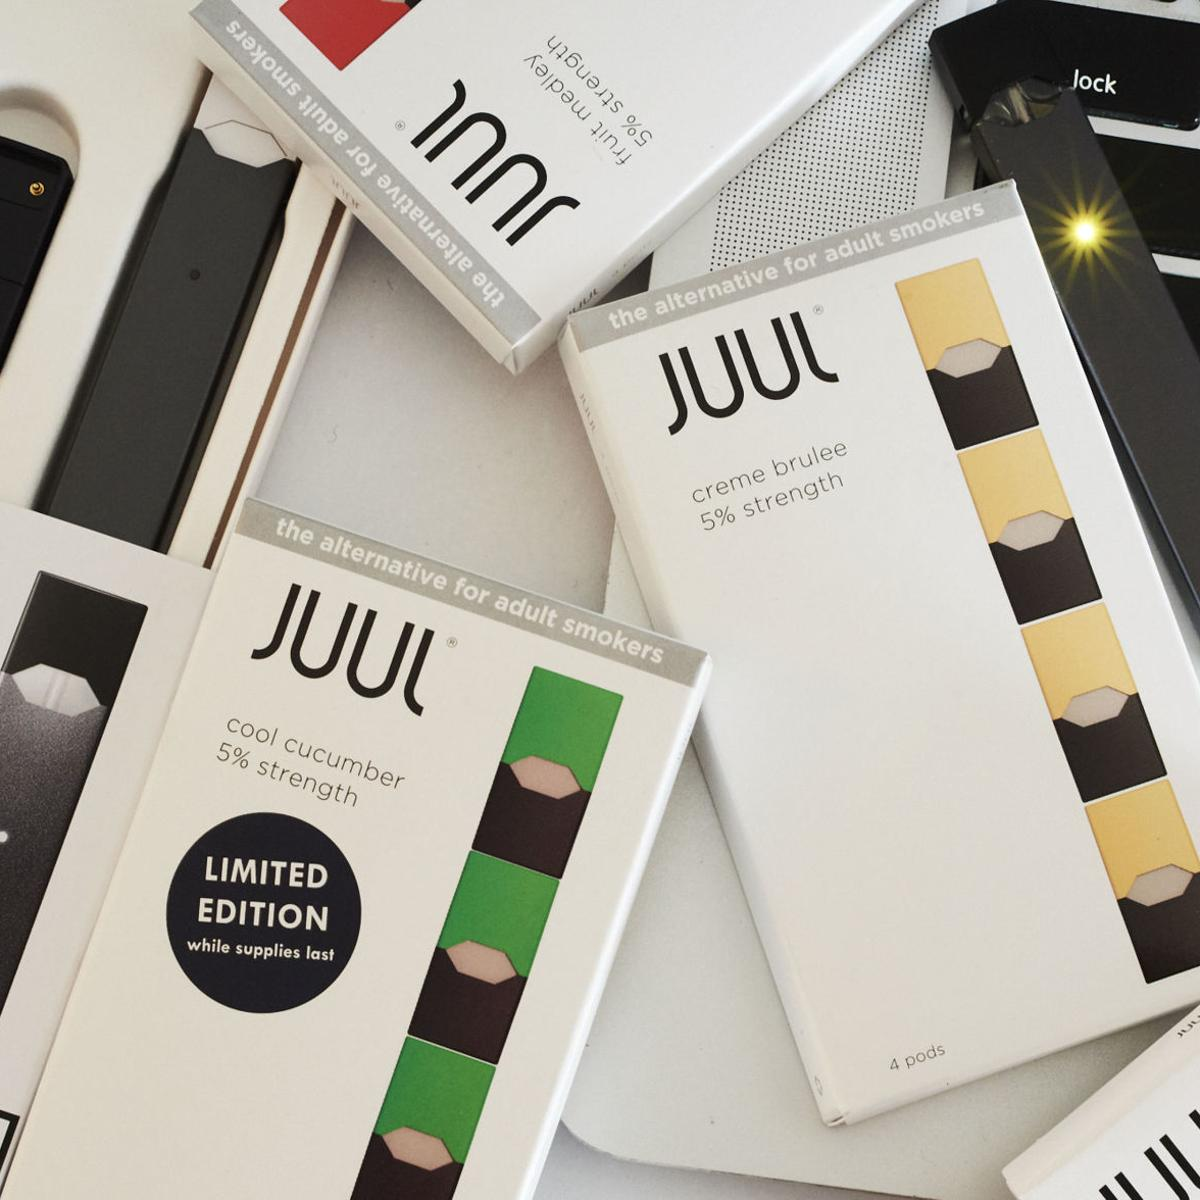 Juul confirms plans to pull four sweet-flavored e-cig styles from